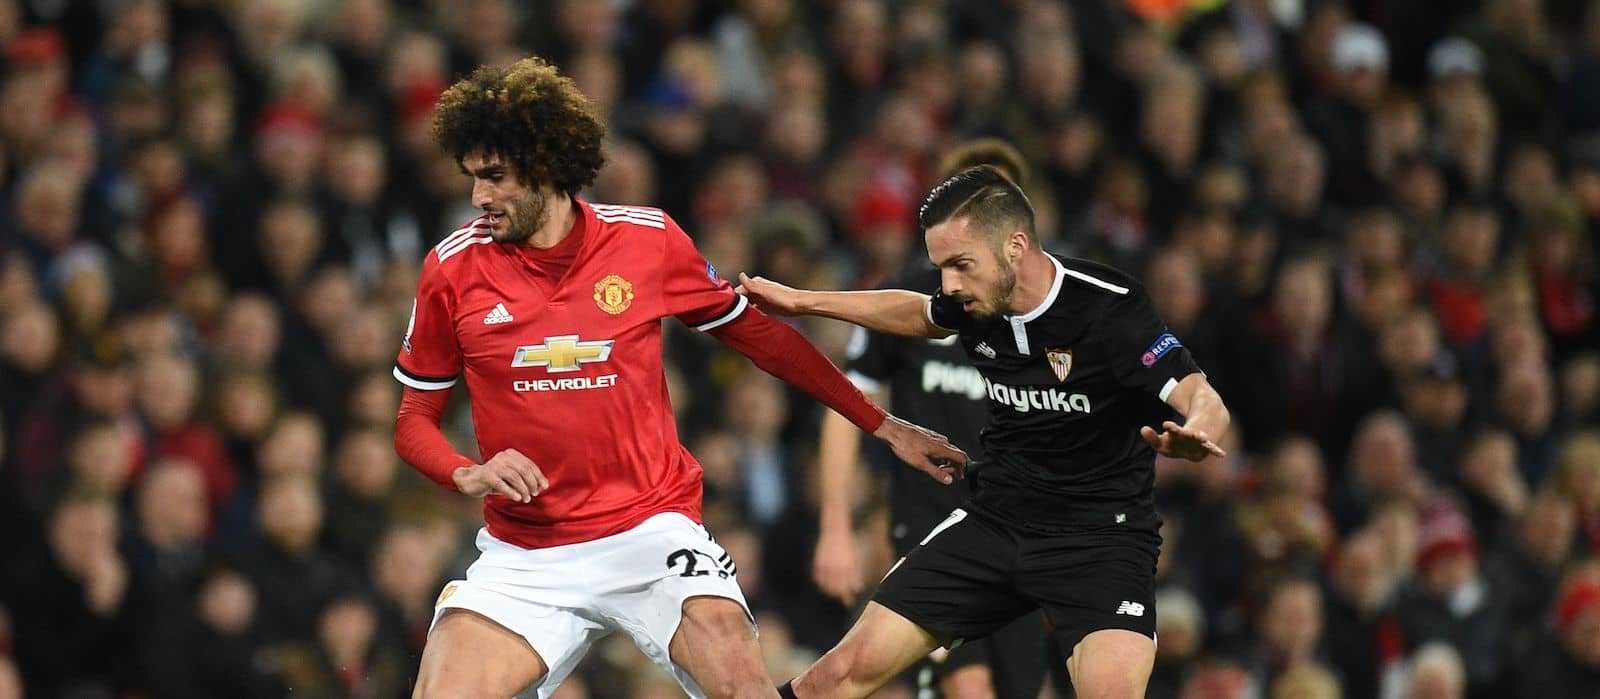 Arsenal interested in surprise move for Marouane Fellaini – reports